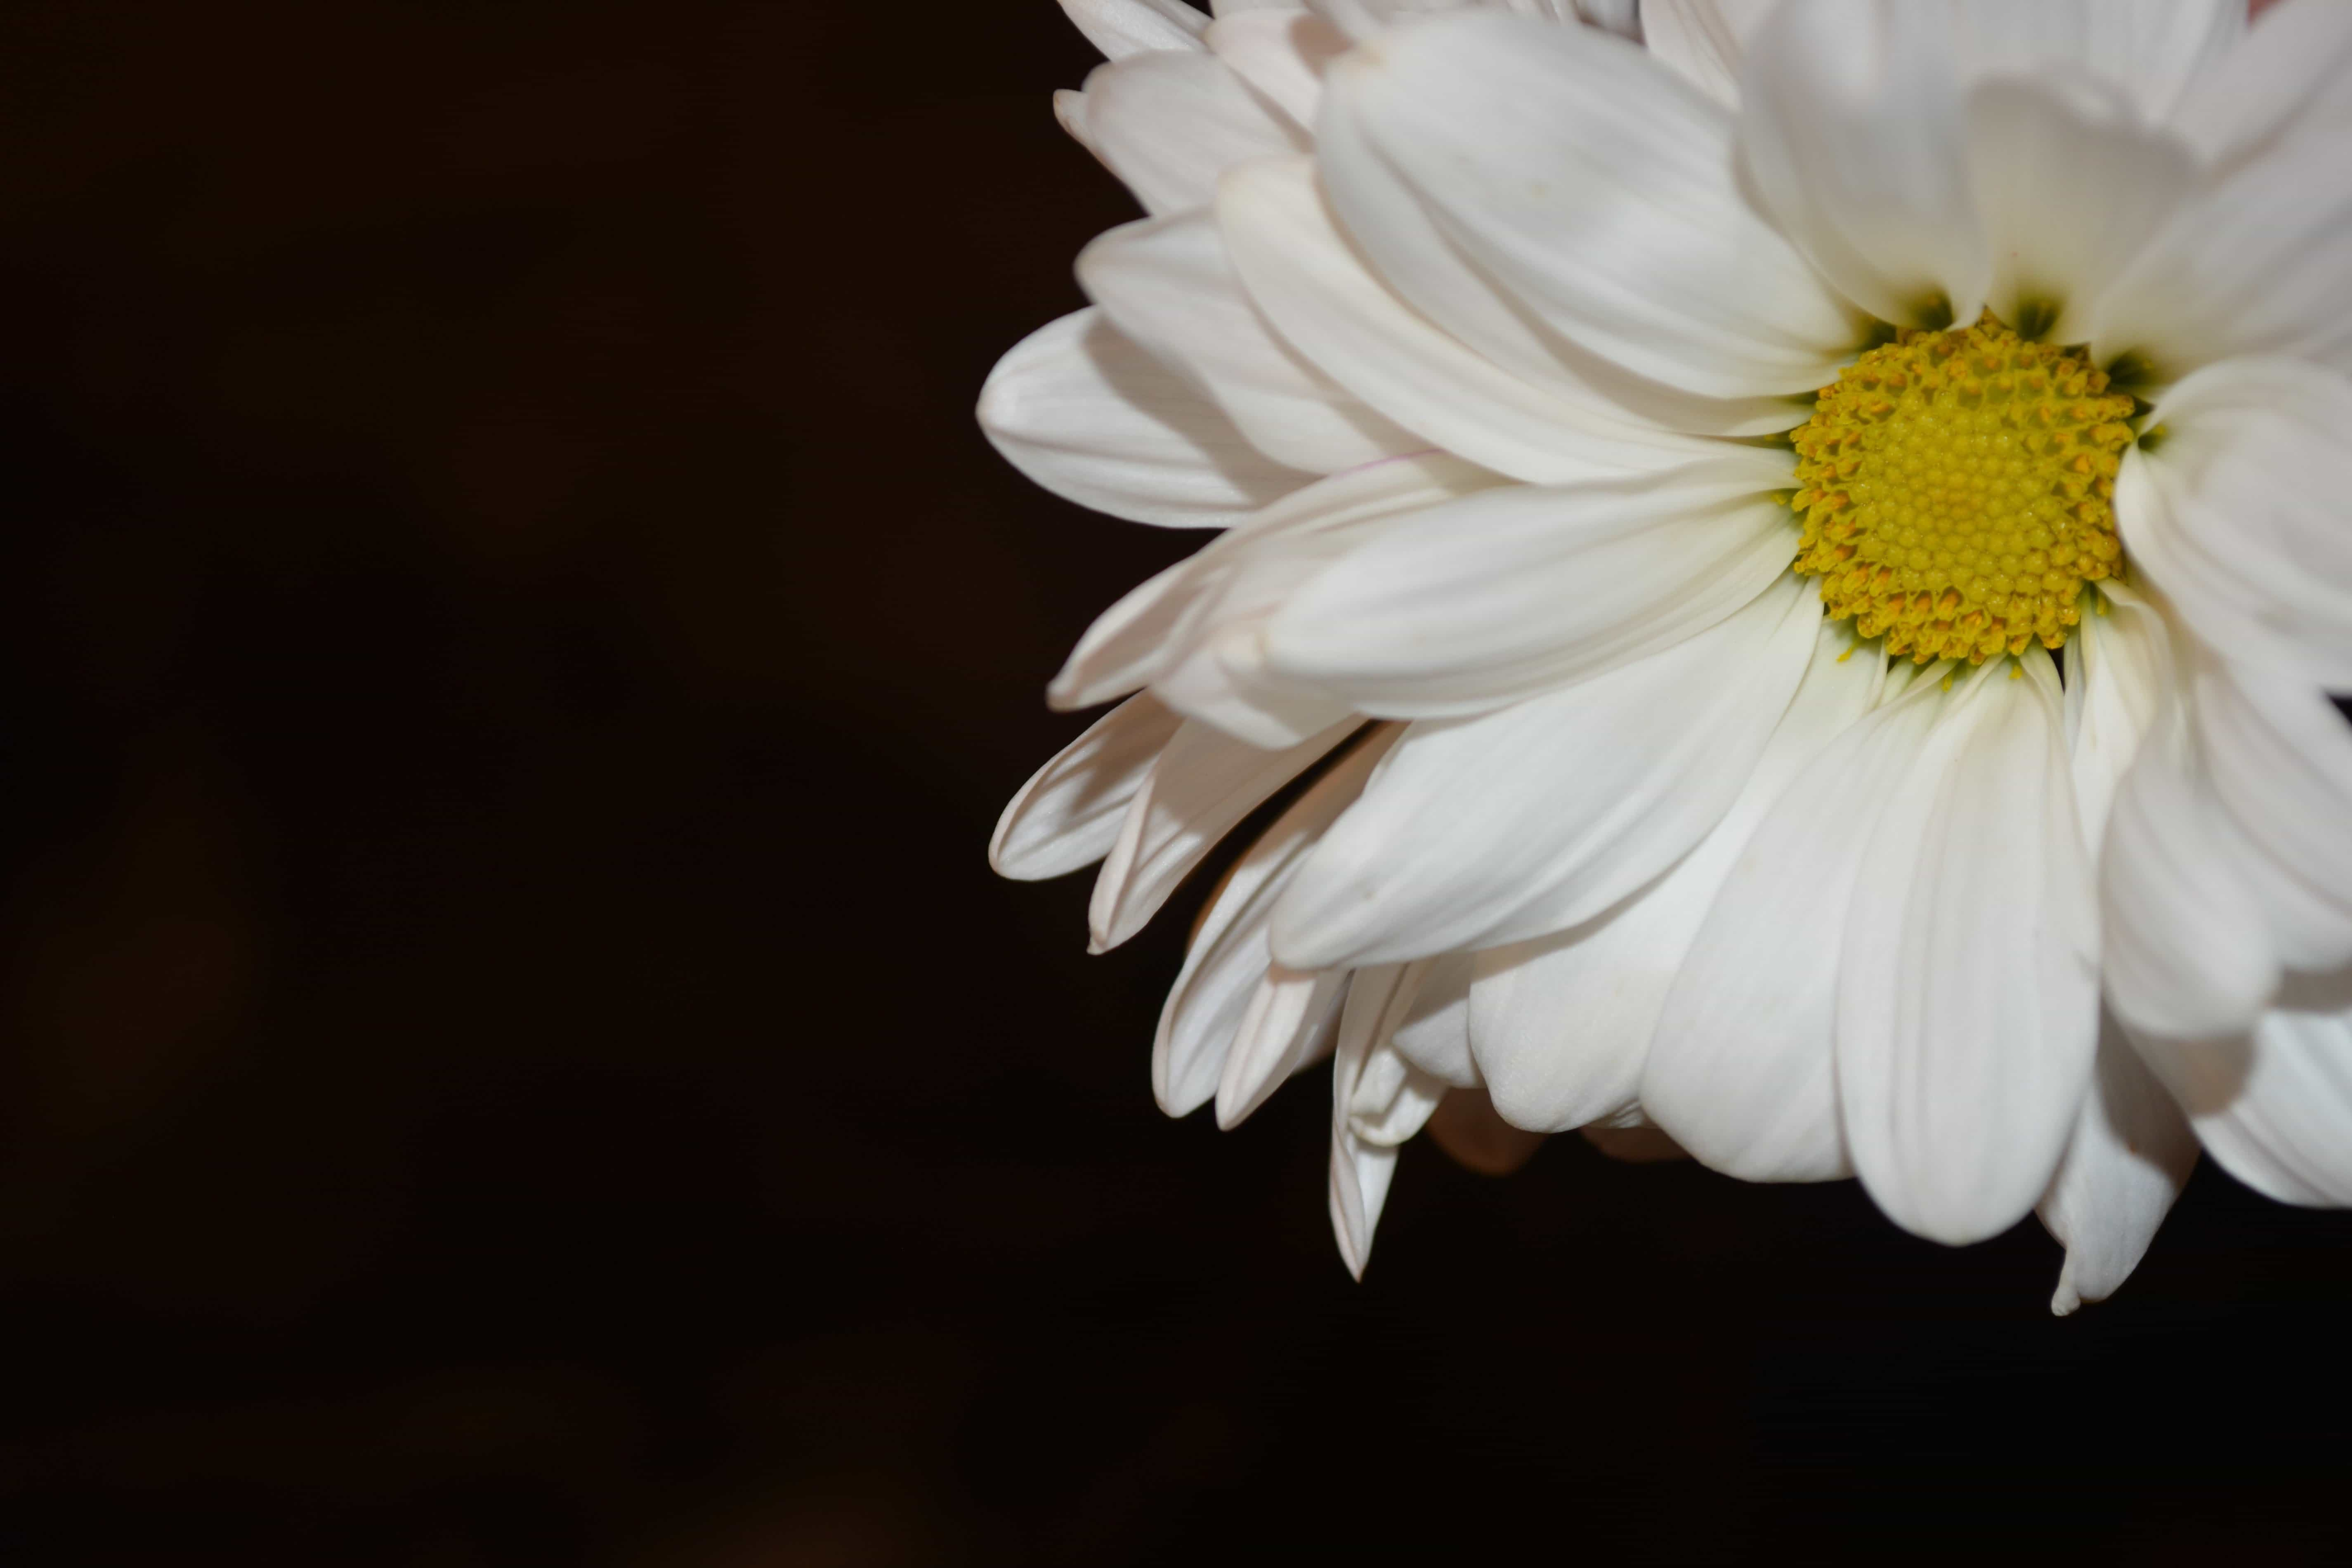 Free picture macro white flower flora nature daisy petal macro white flower flora nature daisy petal plant blossom garden mightylinksfo